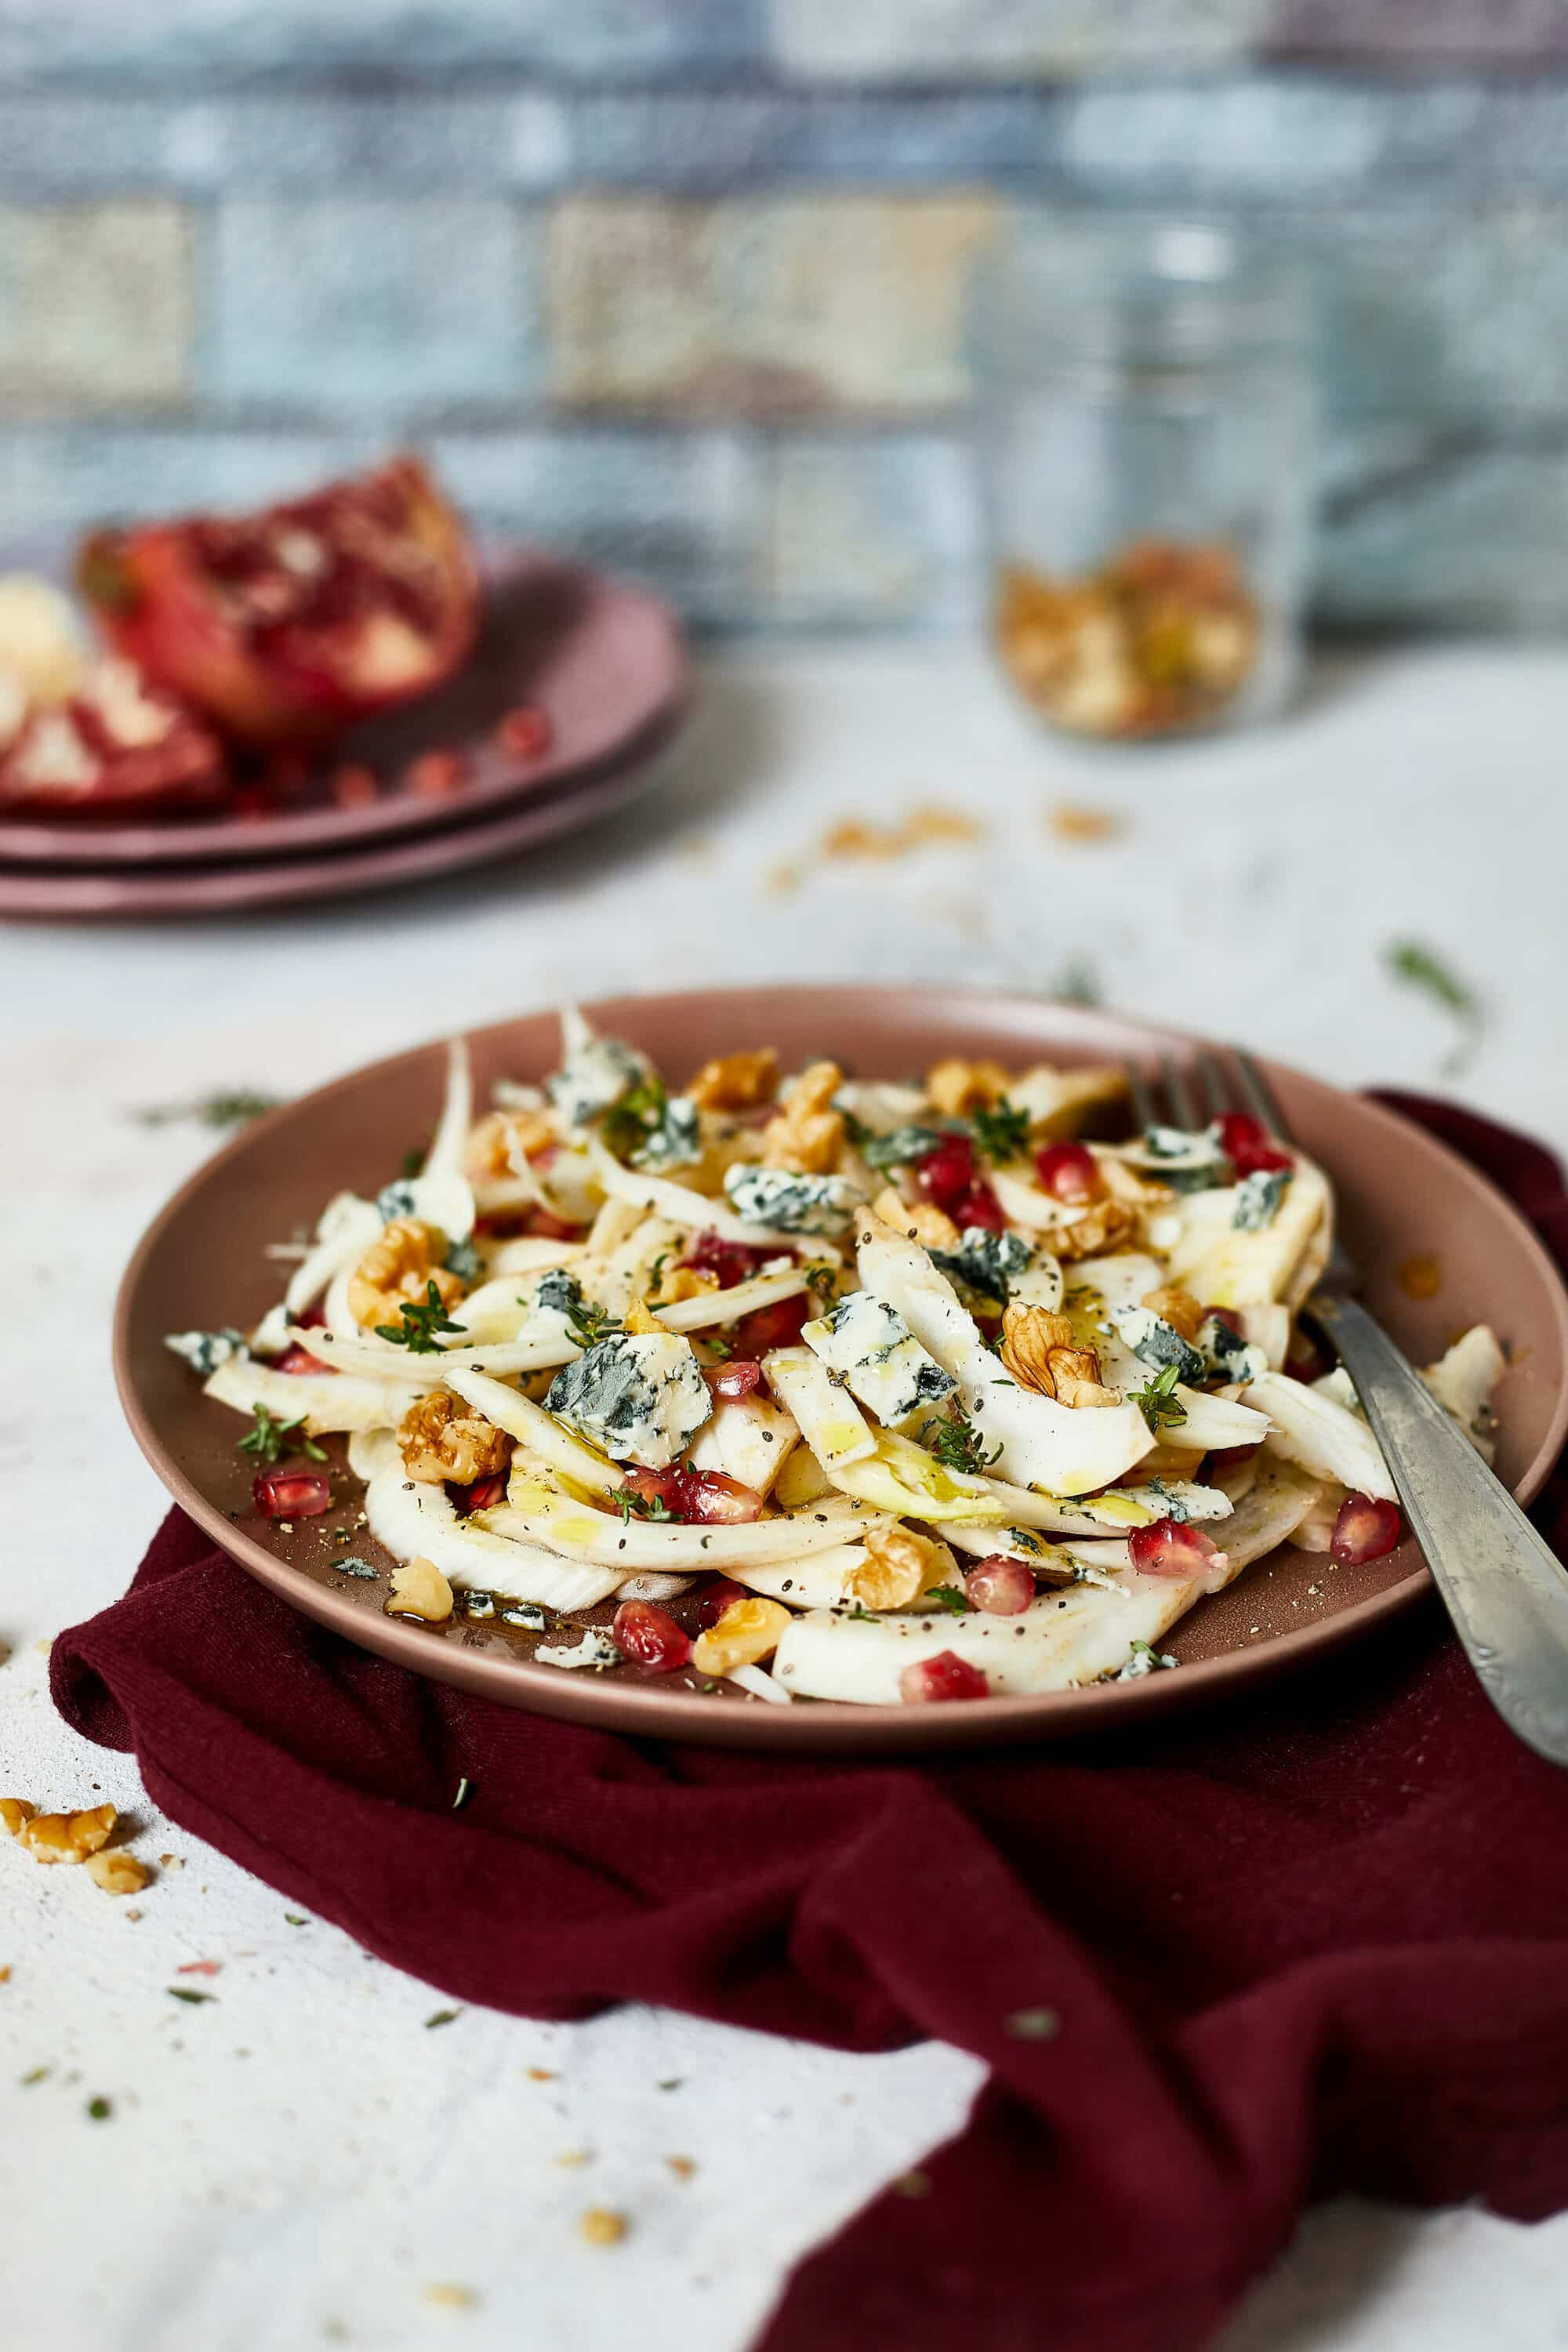 Fennel salad, Spicy Gorgonzola, Pomegranate and Walnuts